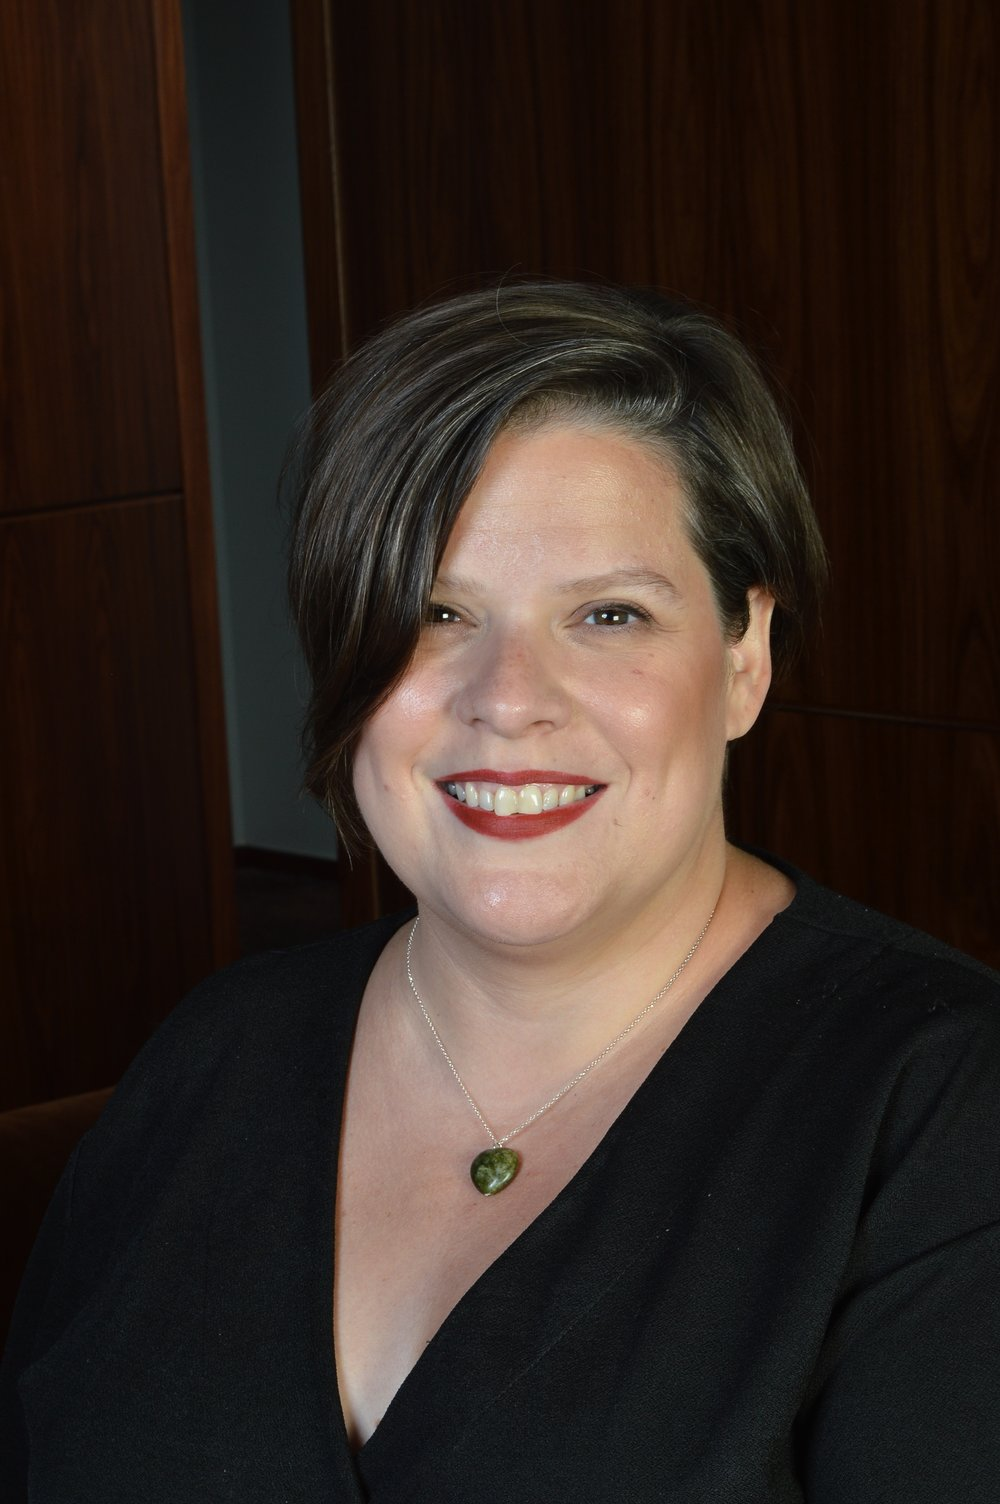 Louise O'Brien - Regional Public Relations Director -Langham Hospitality  - Louise O'Brien is the Regional Public Relations Director for Langham Hospitality Group in North America, directly overseeing the public relations efforts for five hotels in North America, and acting as the liaison for all North American press initiatives on behalf of the Langham Hospitality Group hotels around the world. Prior to joining the team at Langham, Louise was a Vice President at DKC, in the hospitality and lifestyle divisions, focusing on launching hotels, restaurants and bars in New York, Chicago, Miami and around the world. She spent the previous portion of her nearly 15 year career as a destination specialist, serving as an Account Director on the South African Tourism account at Hawkins International in New York; Media Relations expert on the Las Vegas Convention & Visitors Authority account for R&R Partners in Las Vegas; and Media Relations Manager for the French Government Tourist Office (now Atout France), servicing the entire United States. Louise started her career at KWE Associates, which was her first introduction to both public relations and the world of hospitality and tourism. A passionate traveler, she has visited nearly every continent and speaks conversational French and Spanish – or at least she tries. A graduate of Hofstra University, Louise majored in Philosophy and English and was a member of the Alpha Theta Beta sorority and served as Editor in Chief of The Chronicle, Hofstra's weekly newspaper. Louise is a native of New York City.